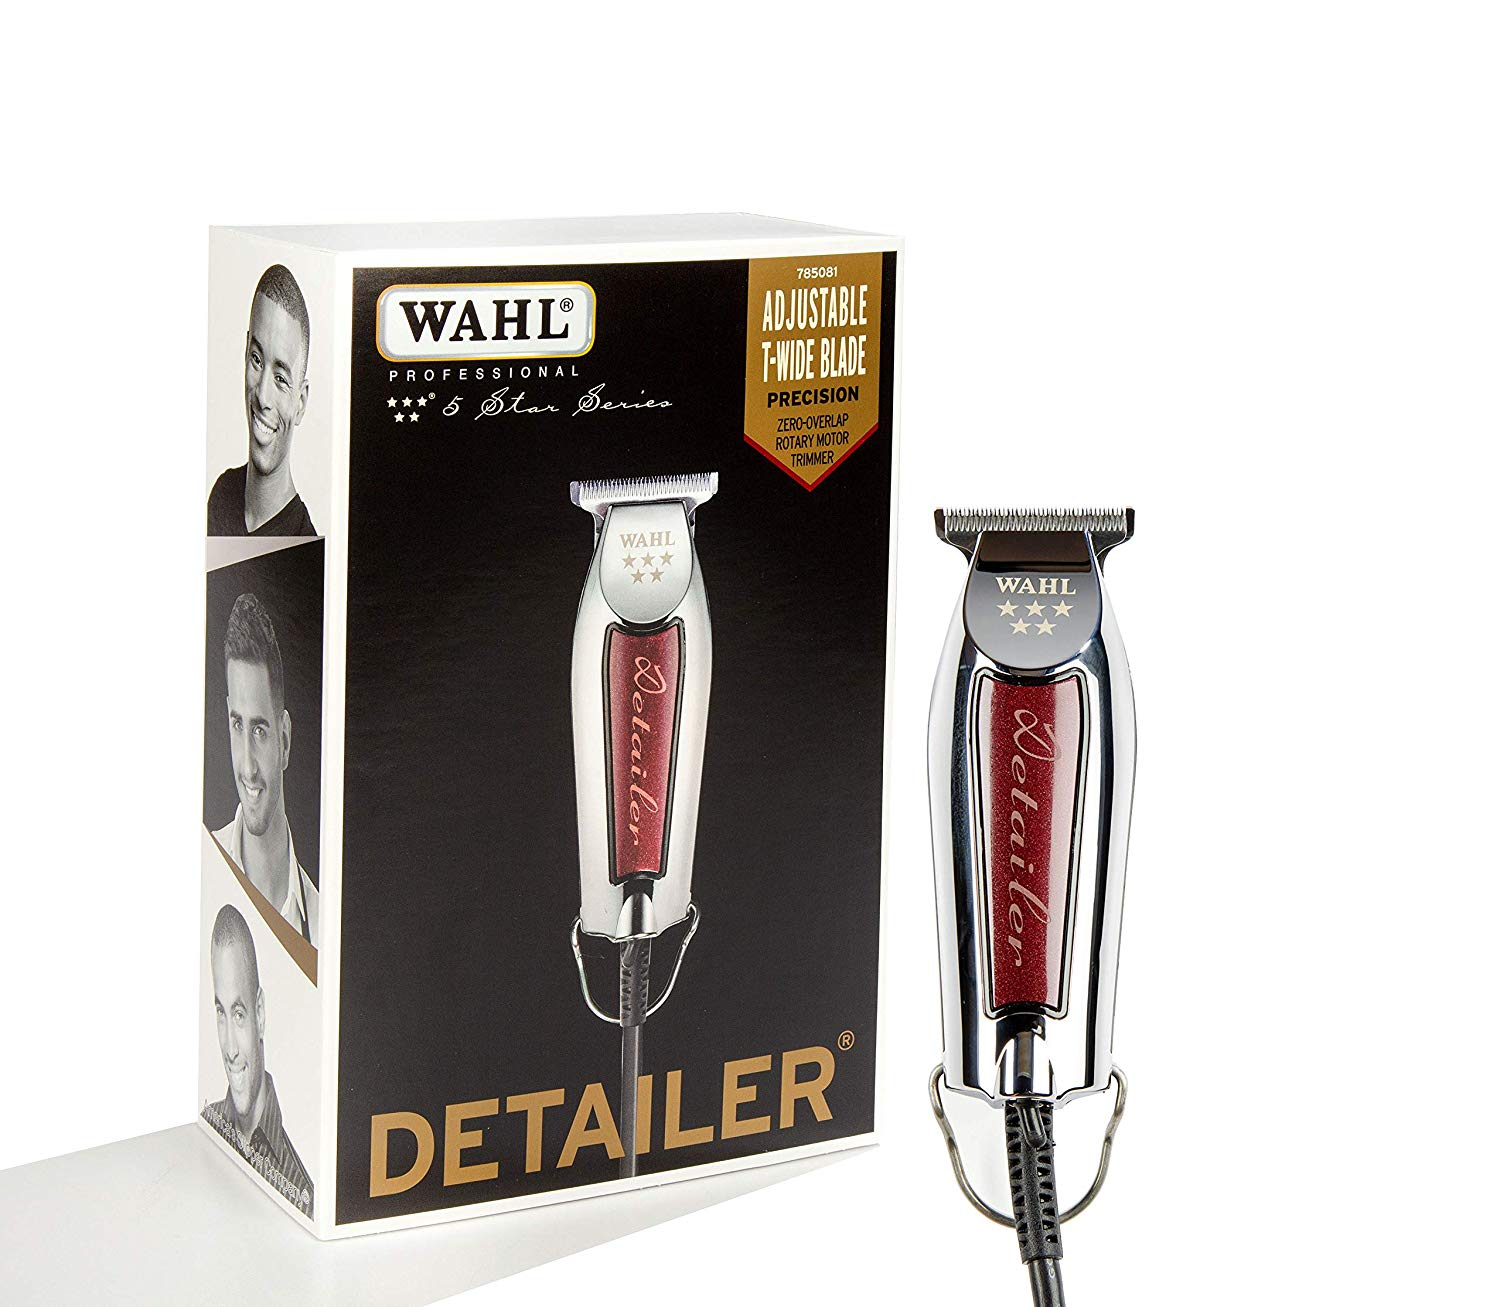 Wahl Professional Series Detailer #8081 …